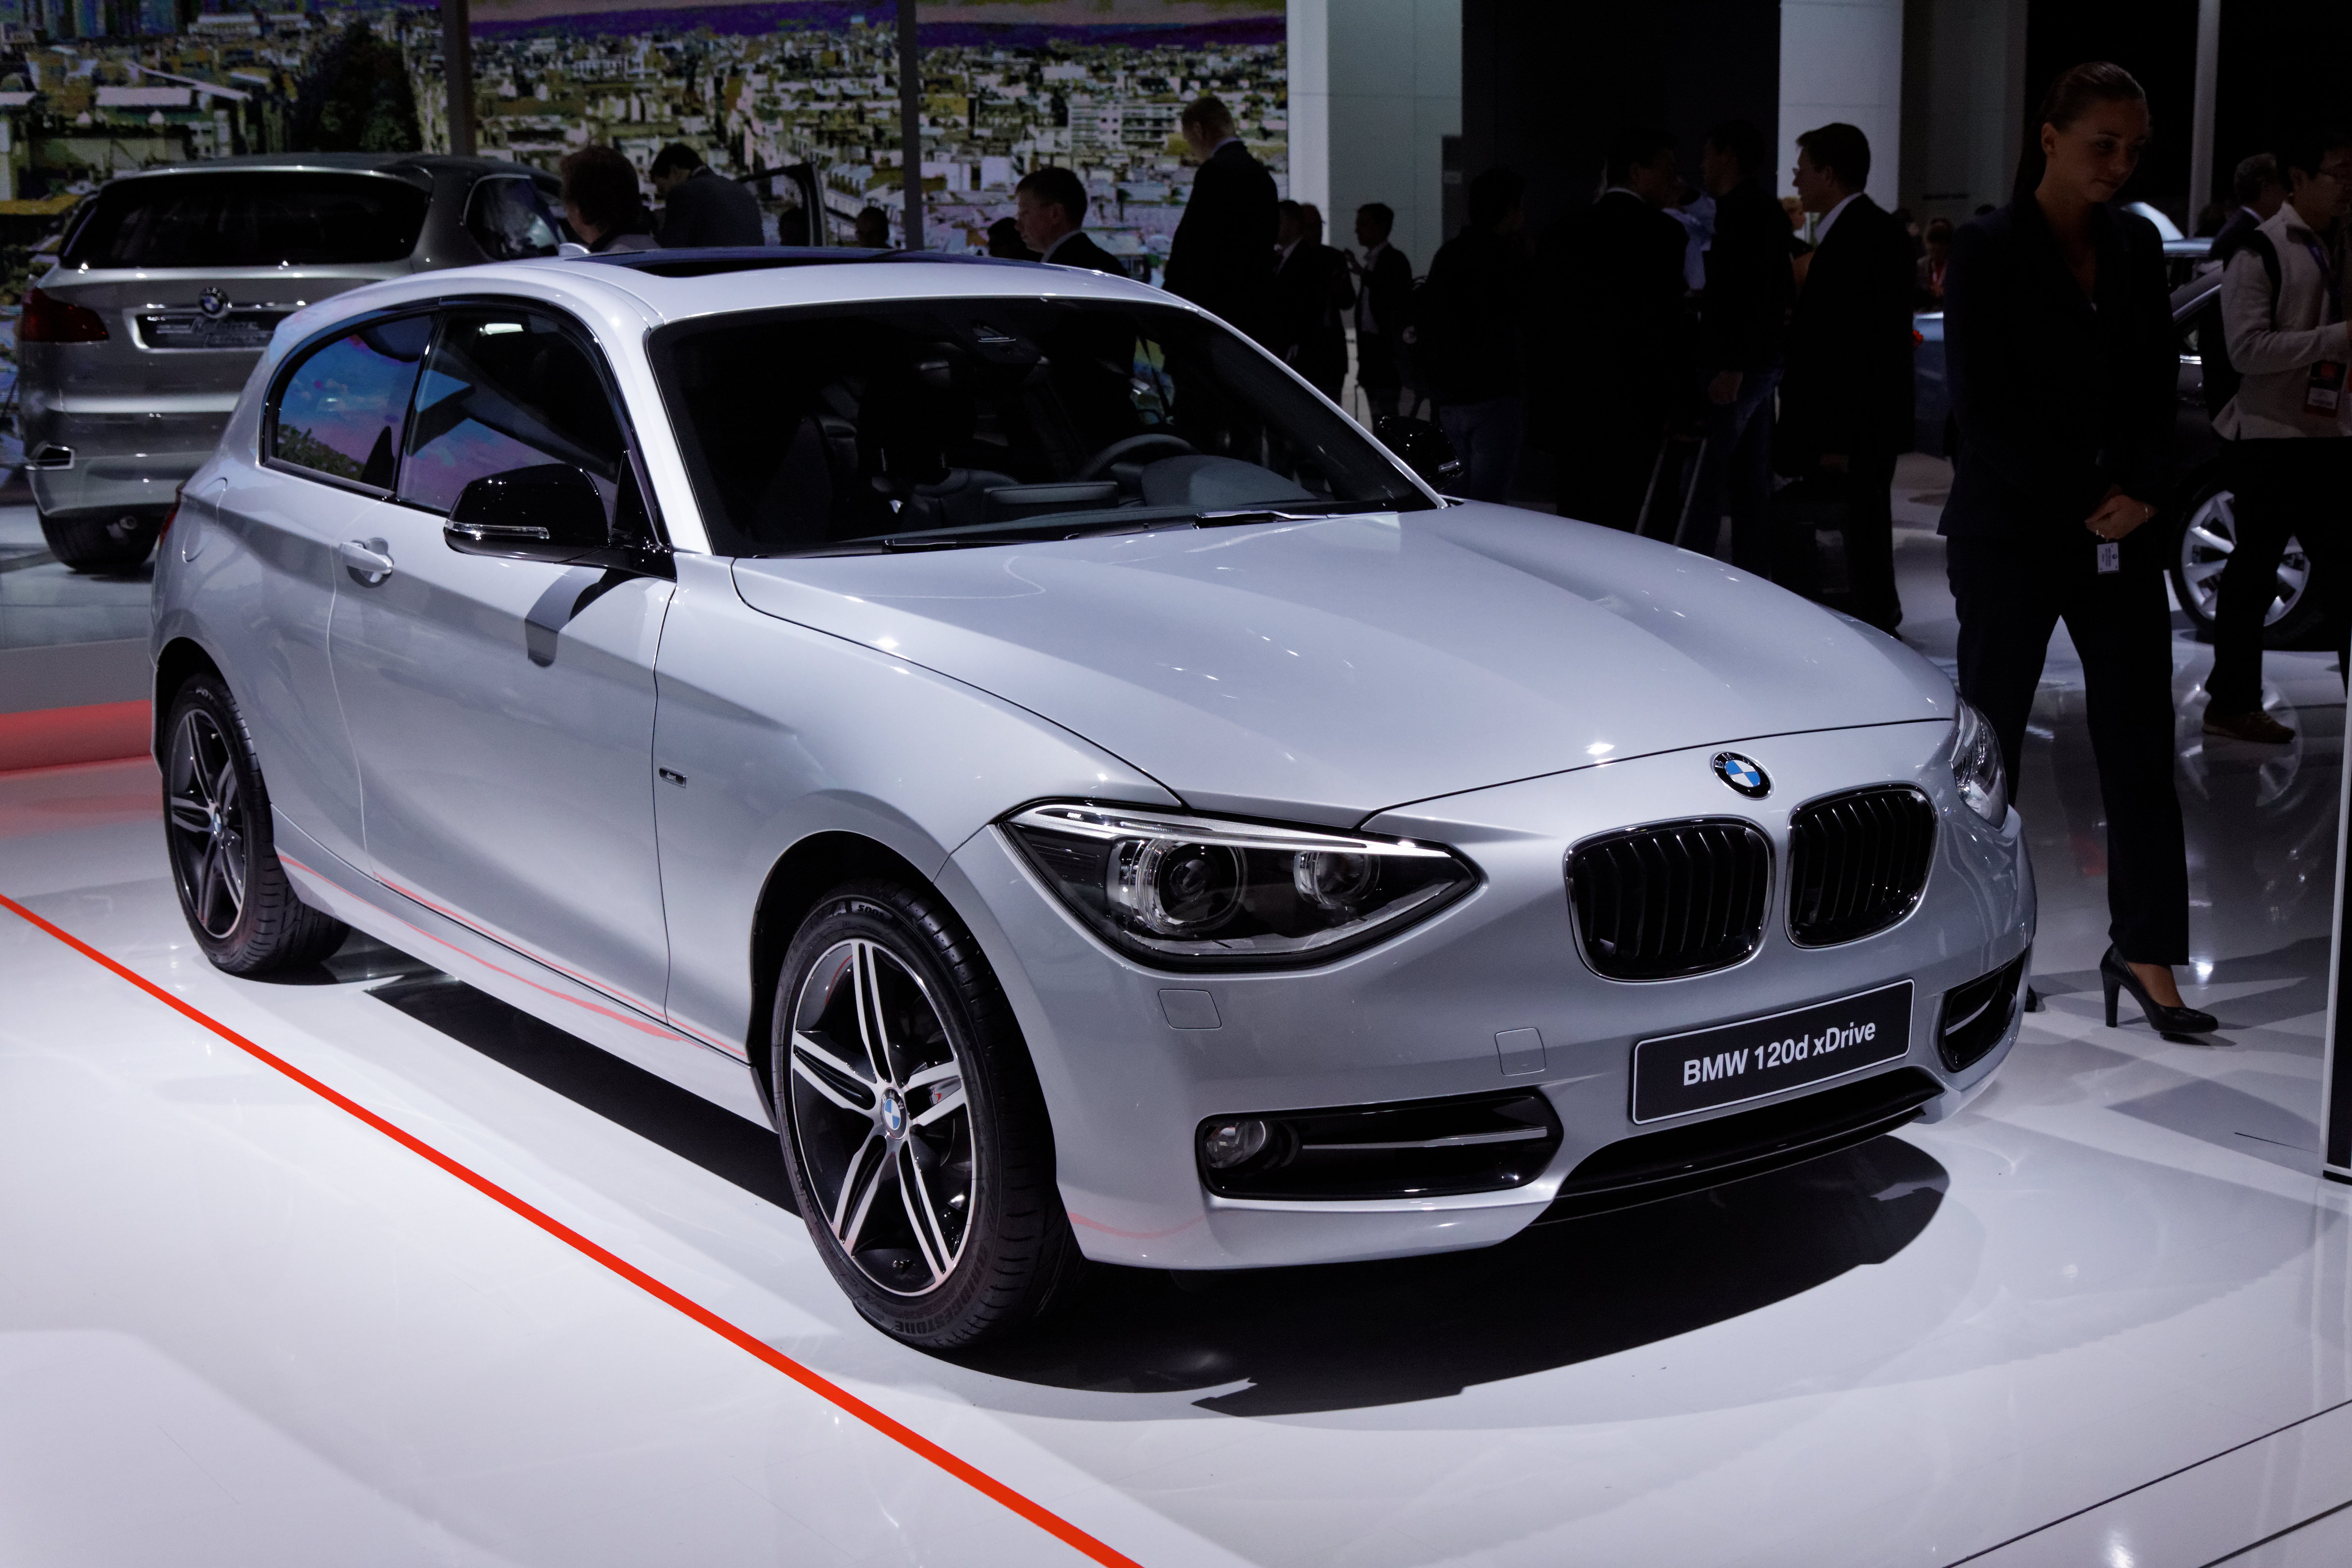 file bmw 120d xdrive mondial de l 39 automobile de paris 2012 wikimedia commons. Black Bedroom Furniture Sets. Home Design Ideas